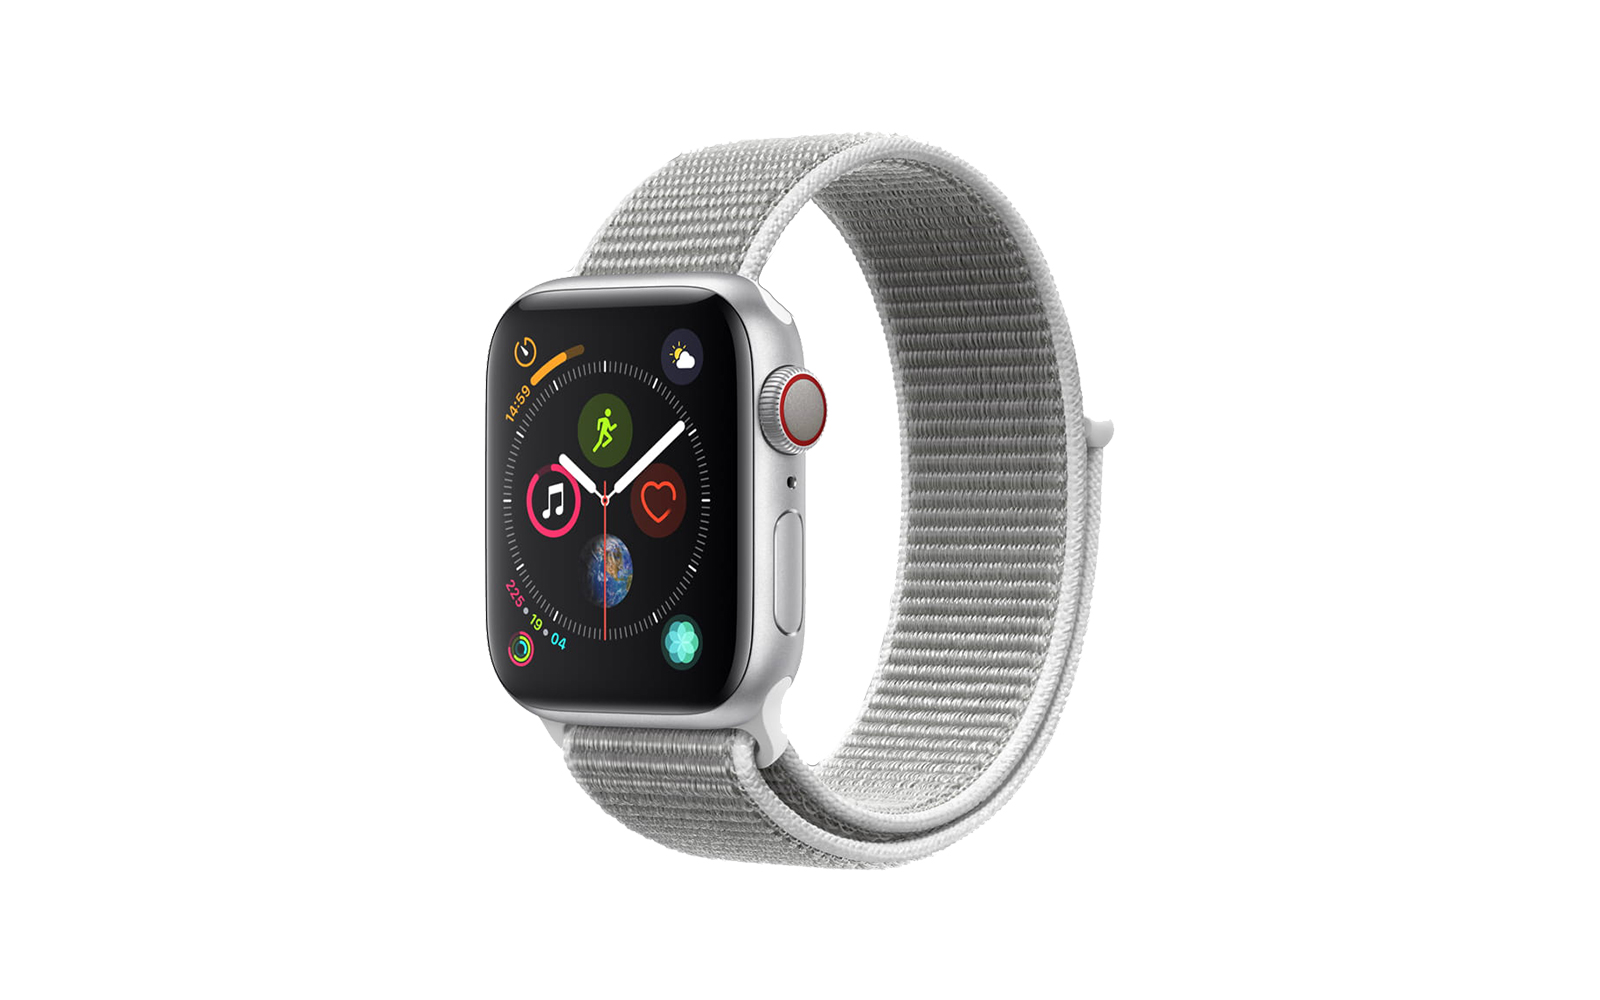 Save on the Apple Watch Series 5 with this Cyber Monday deal